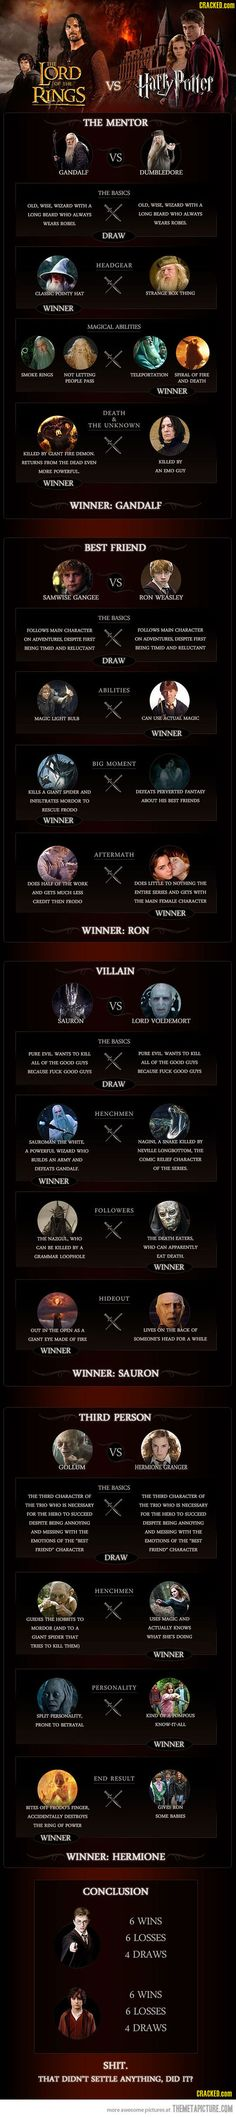 Harry Potter Albus Dumbledore versus Lord of the Rings Gandalf the Grey